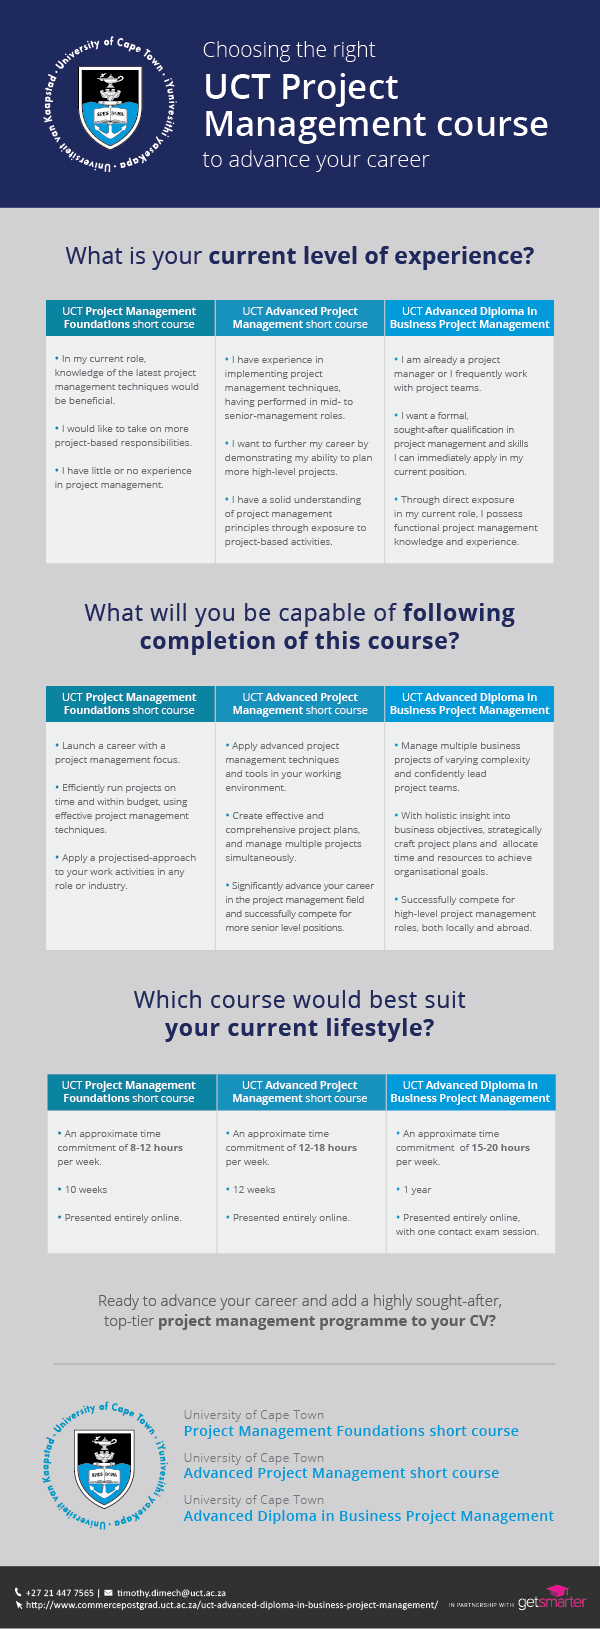 Postgrad-Resources-choose-uct-project-management-course-infographic